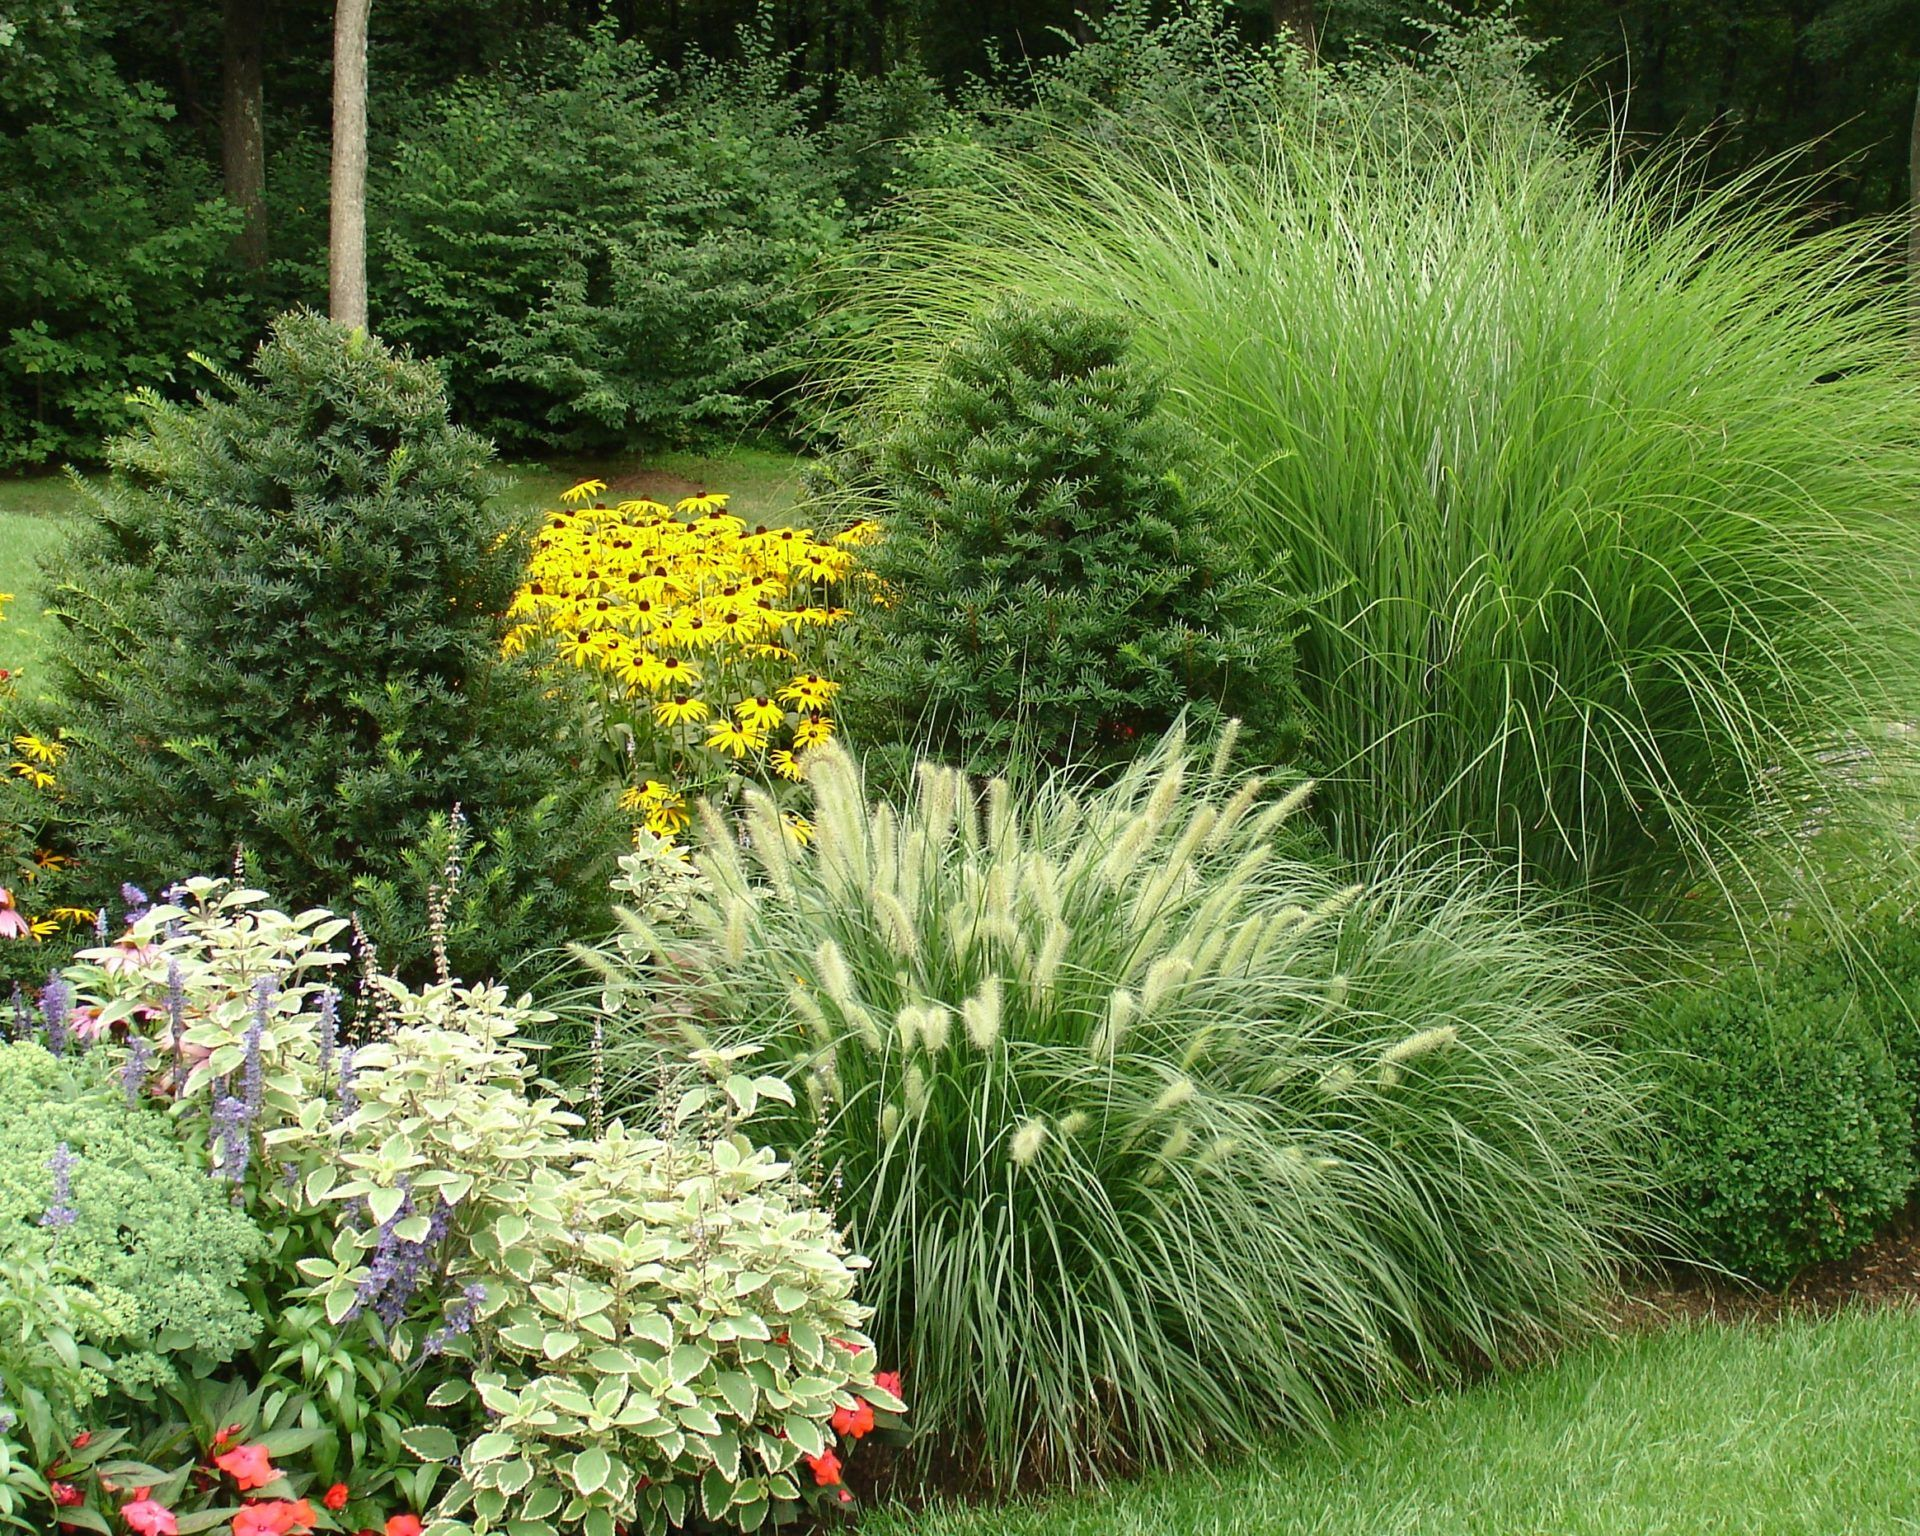 Pin by zdzisaw kluniak on ogrd pinterest gardens planting johnsen landscapes pools mixing ornamental grasses with evergreens works well in an exuberant plant border thinking this is what i need to separate workwithnaturefo